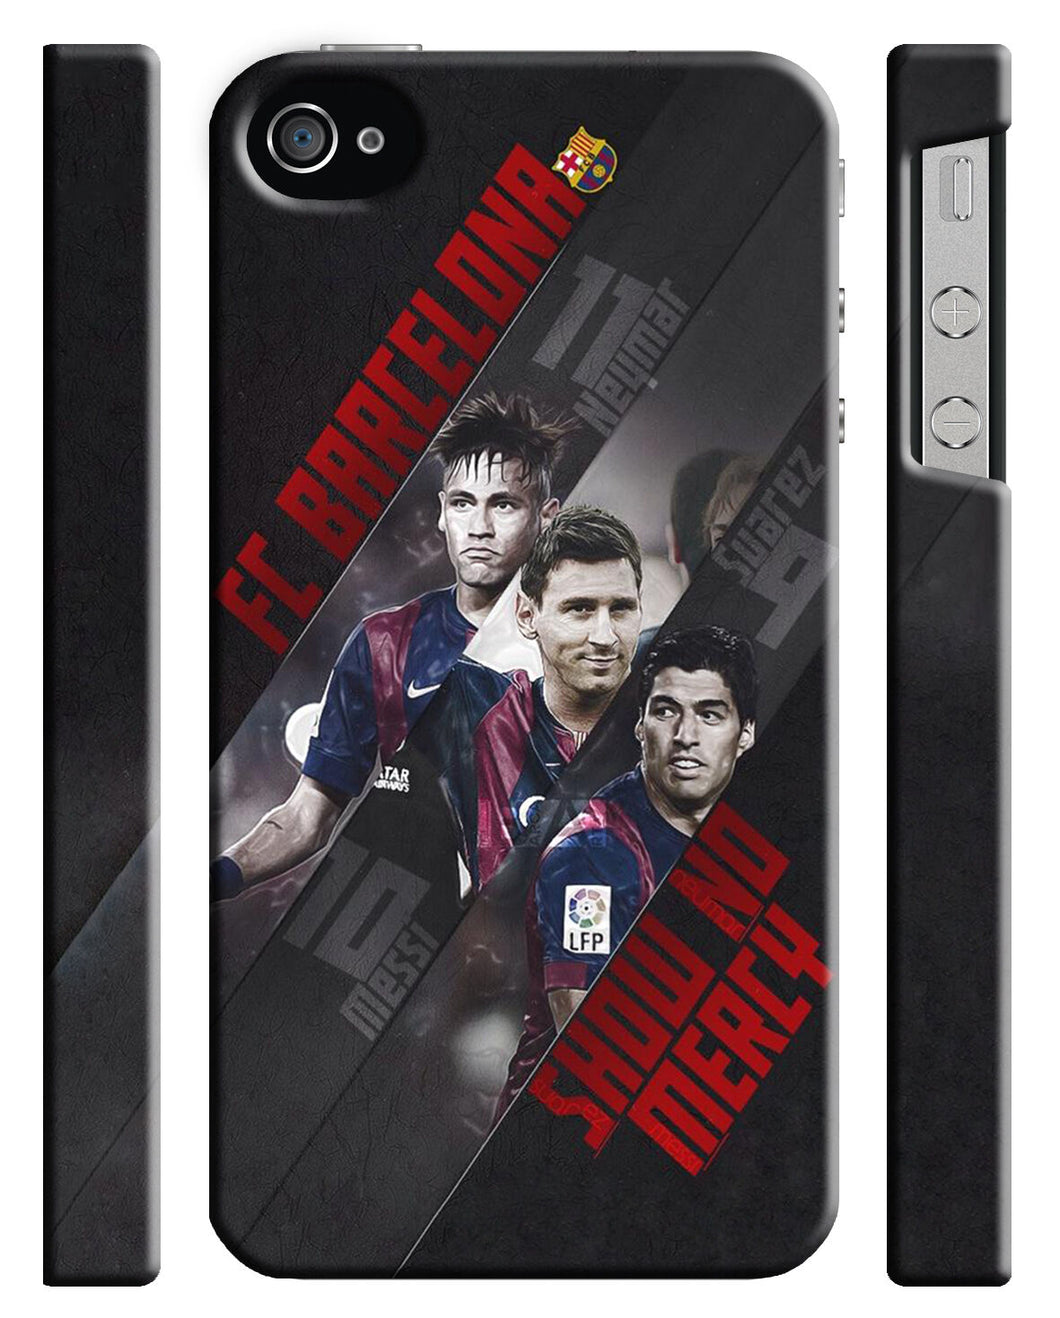 Iphone 4S 5 5s 5c 6 6S 7 8 X XS Max XR Plus SE Case Messi Neymar Suarez  07